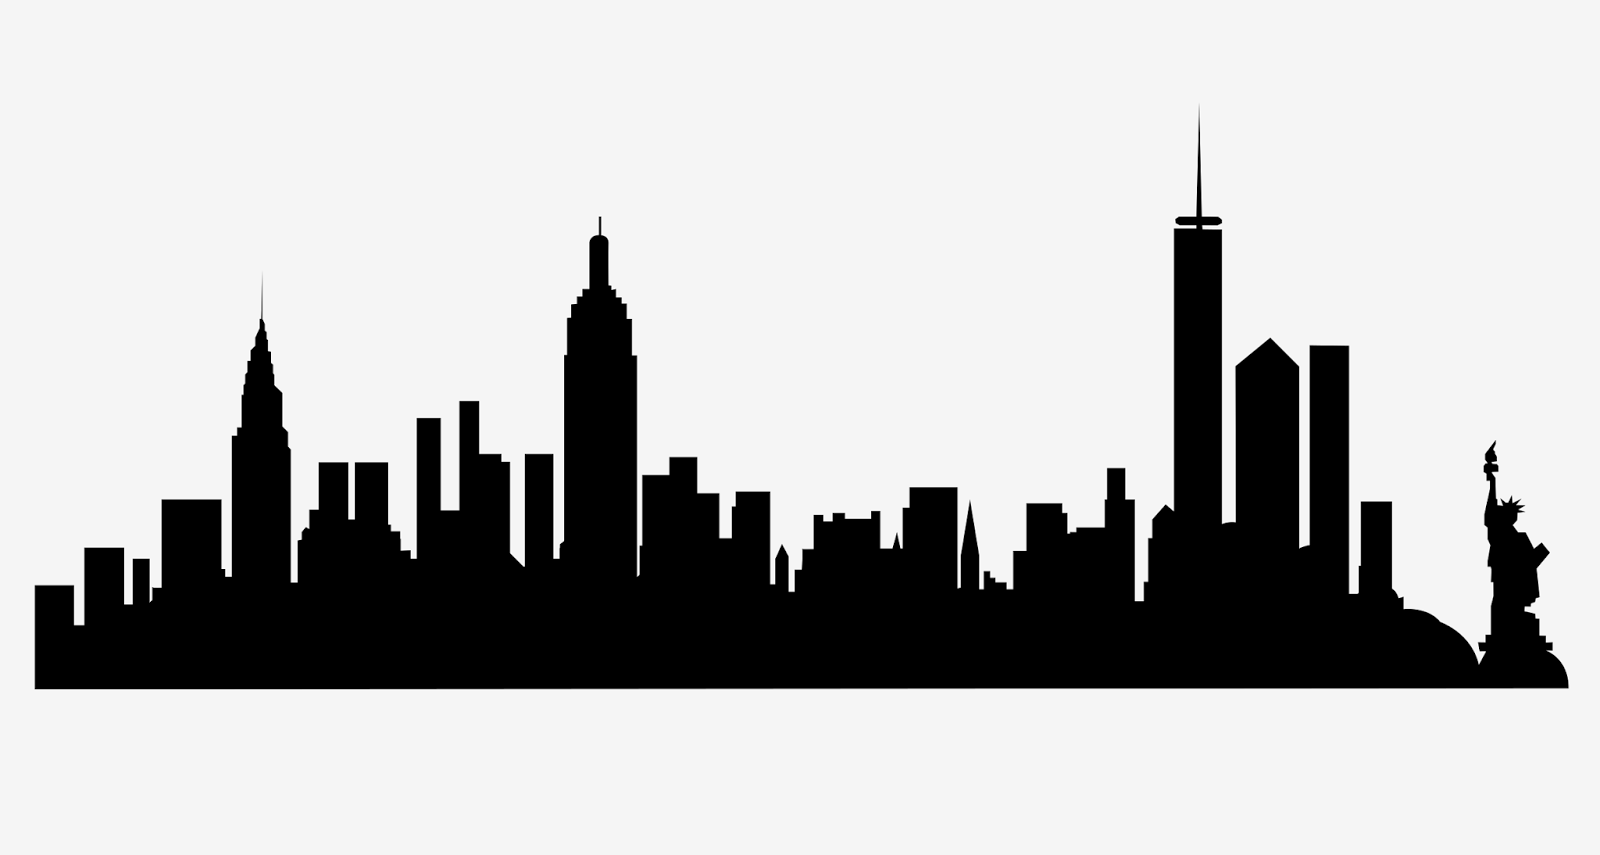 Skyline clipart urban person. This is a free